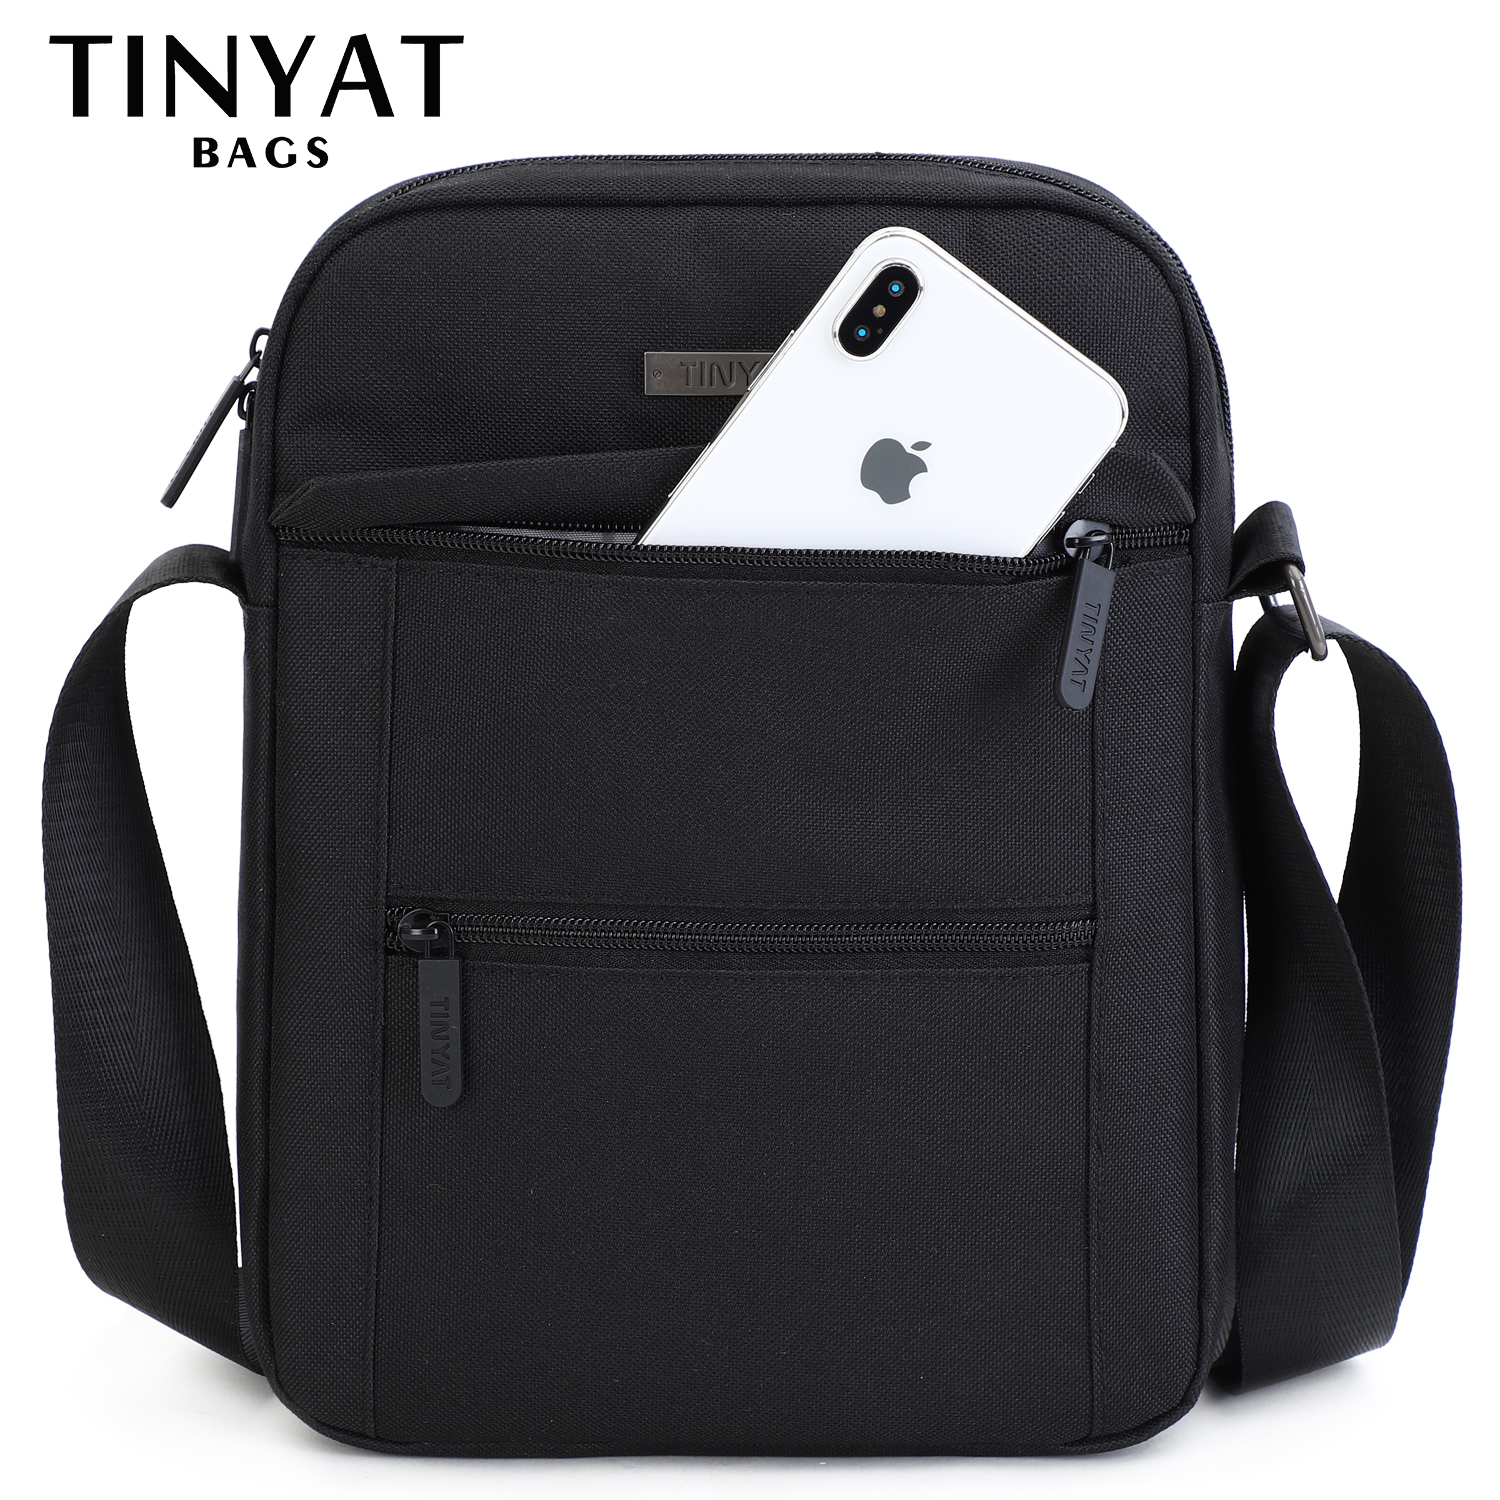 TINYTA Men's Bag Light Men Shoulder Bag For 9.7'pad 9 Pocket Waterproof Casual Crossbody Bag Black Canvas Messenger Bag Shoulder